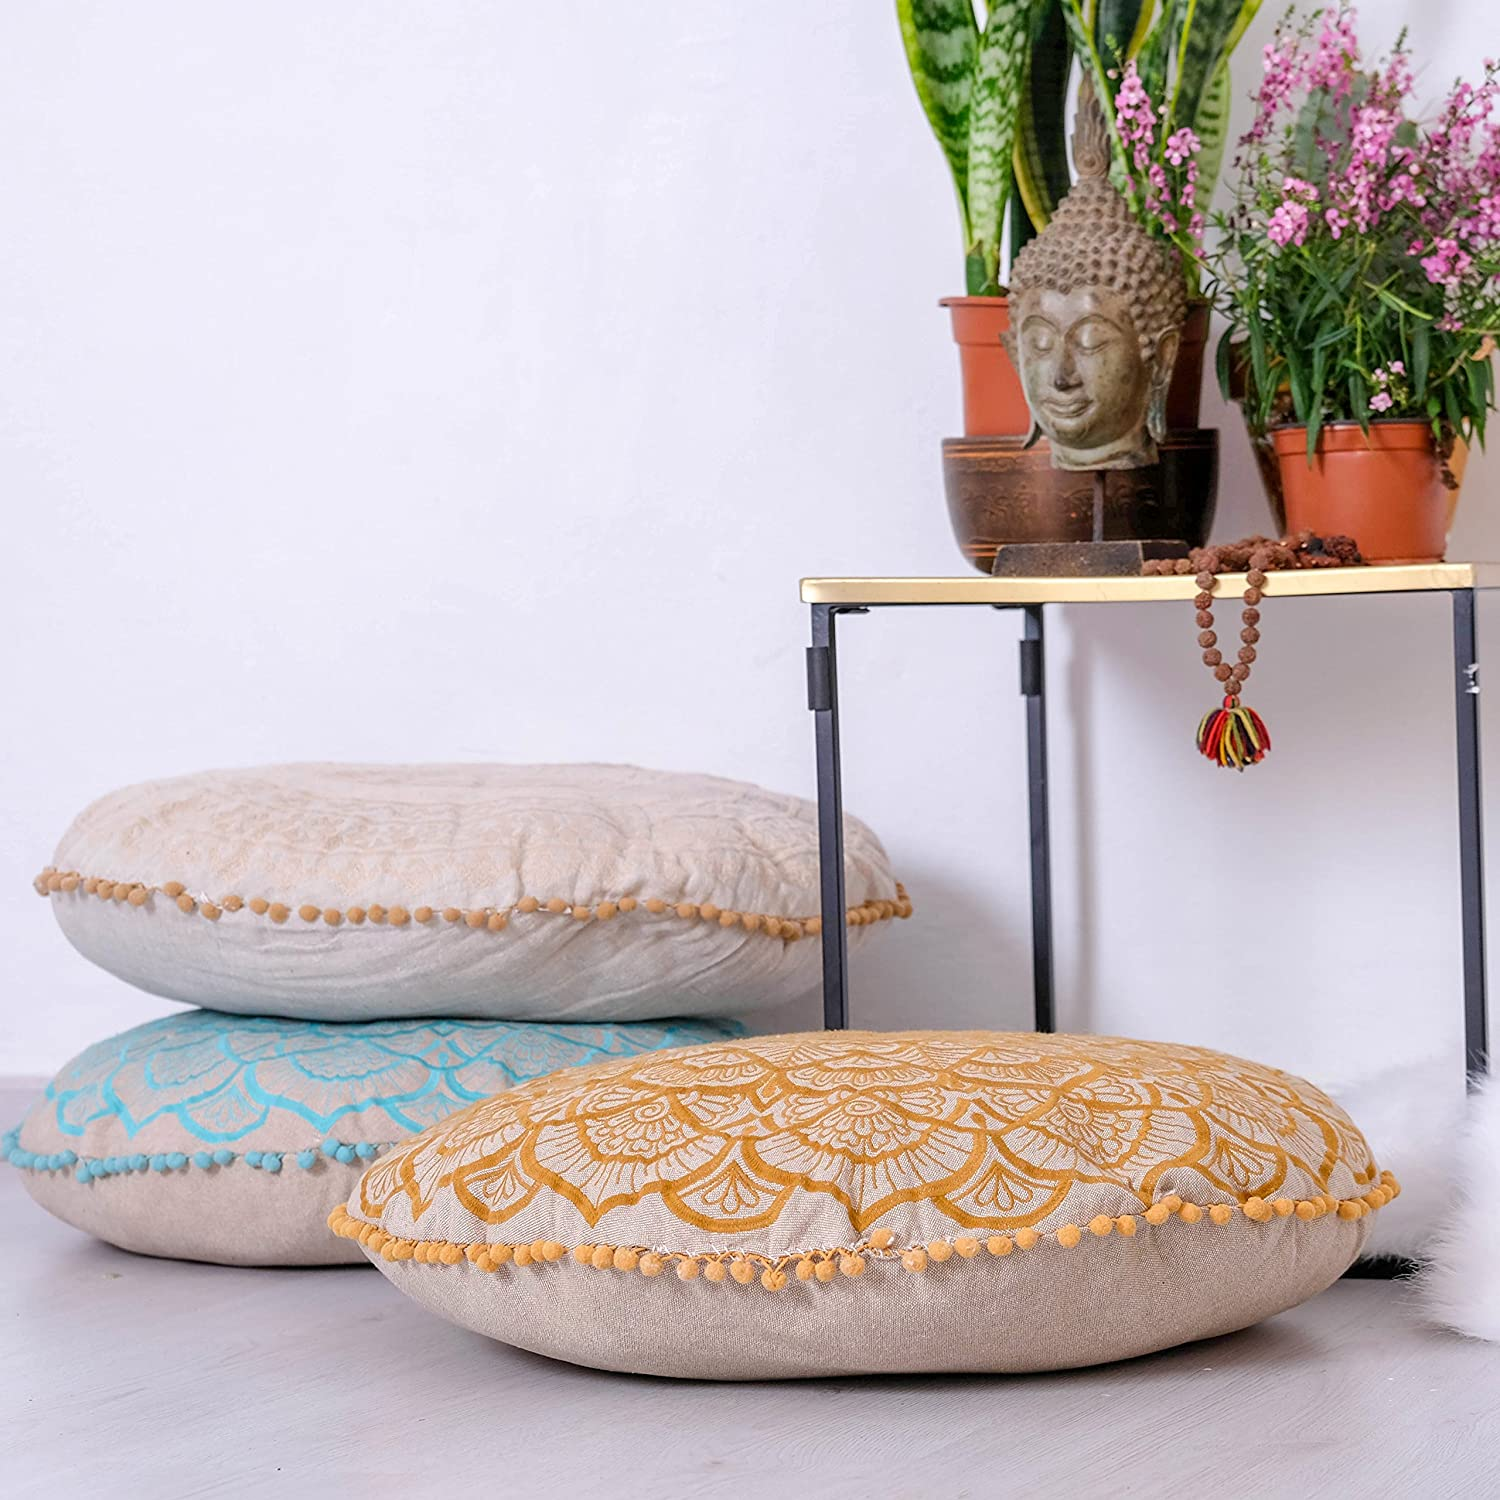 Décor Pouf for Meditation, Yoga, and Boho Chic Seating Area Floor Pillow – – Handmade in India